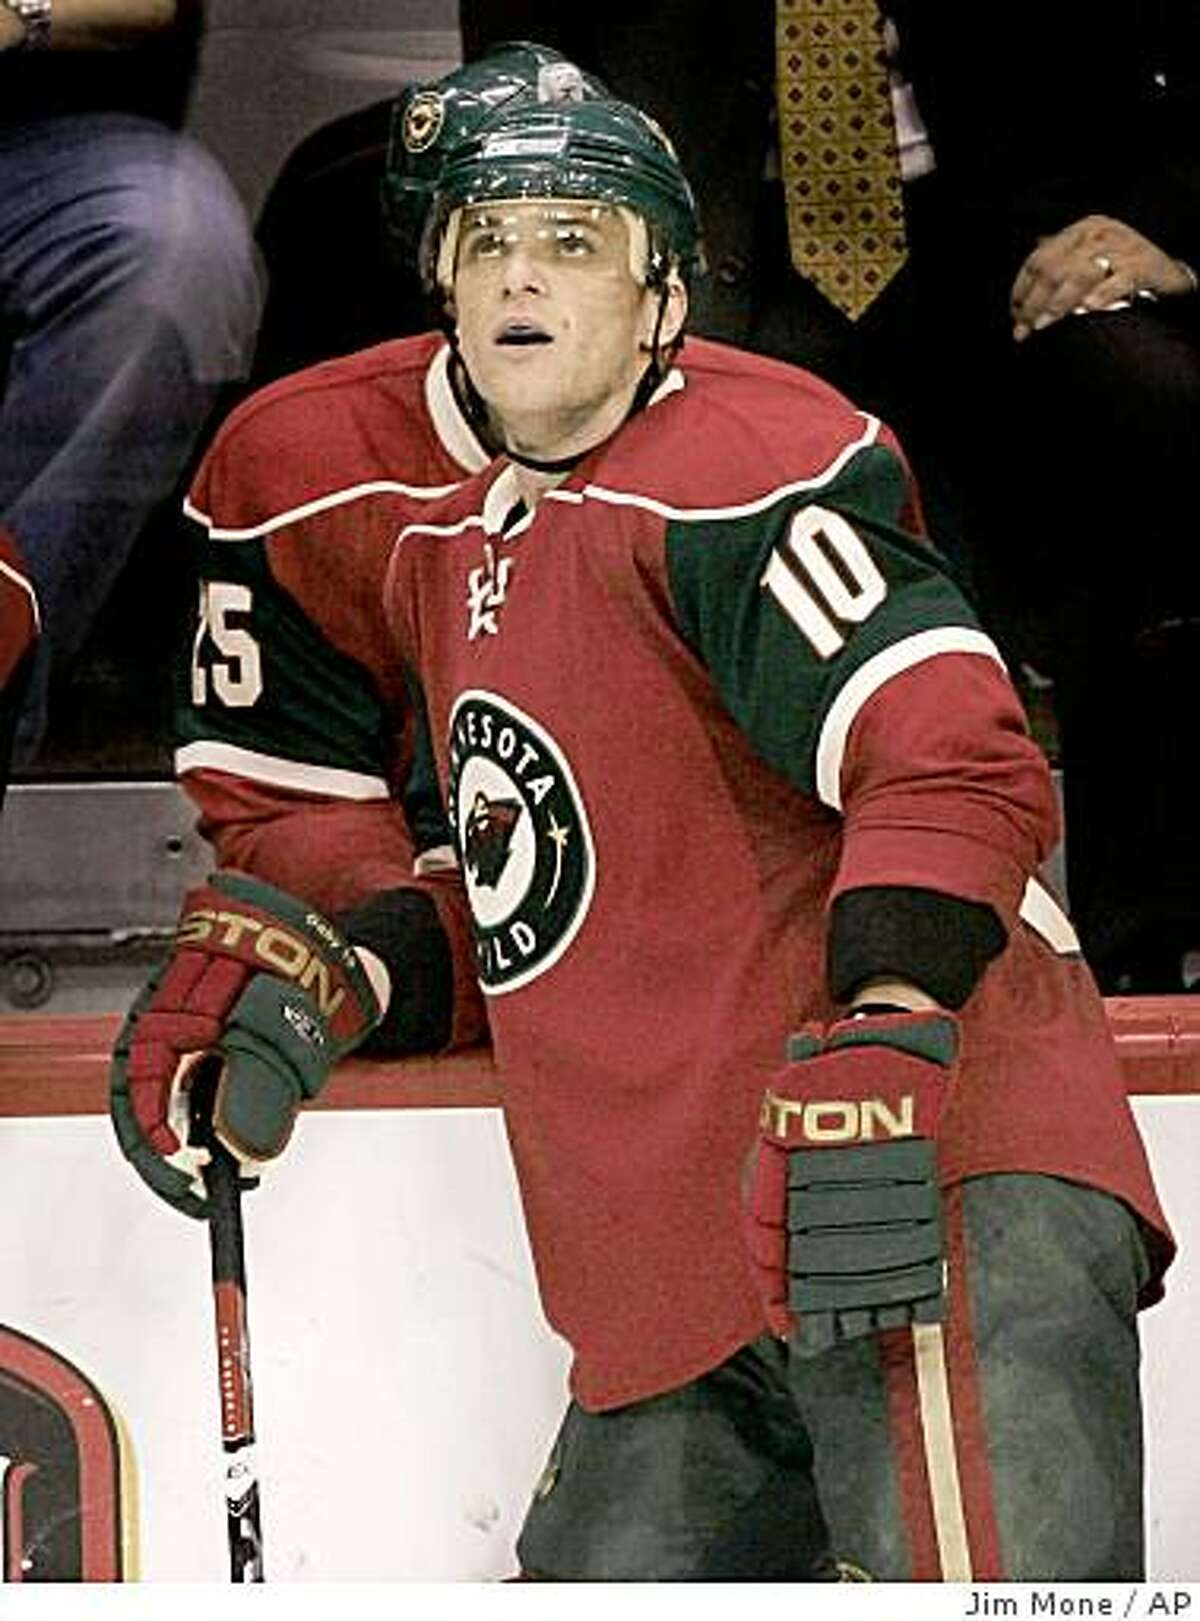 **ADVANCE FOR RELEASE WEEKEND EDITIONS JAN. 19-21** Minnesota Wild's Marian Gaborik, of Slovakia, takes a break during an NHL hockey game against the Vancouver Canucks on Nov. 21, 2007 in St. Paul, Minn. Chosen as an All-Star for the second time, Gaborik has skated in all but five of Minnesota's games and has climbed to seventh in the league in goals. (AP Photo/Jim Mone)